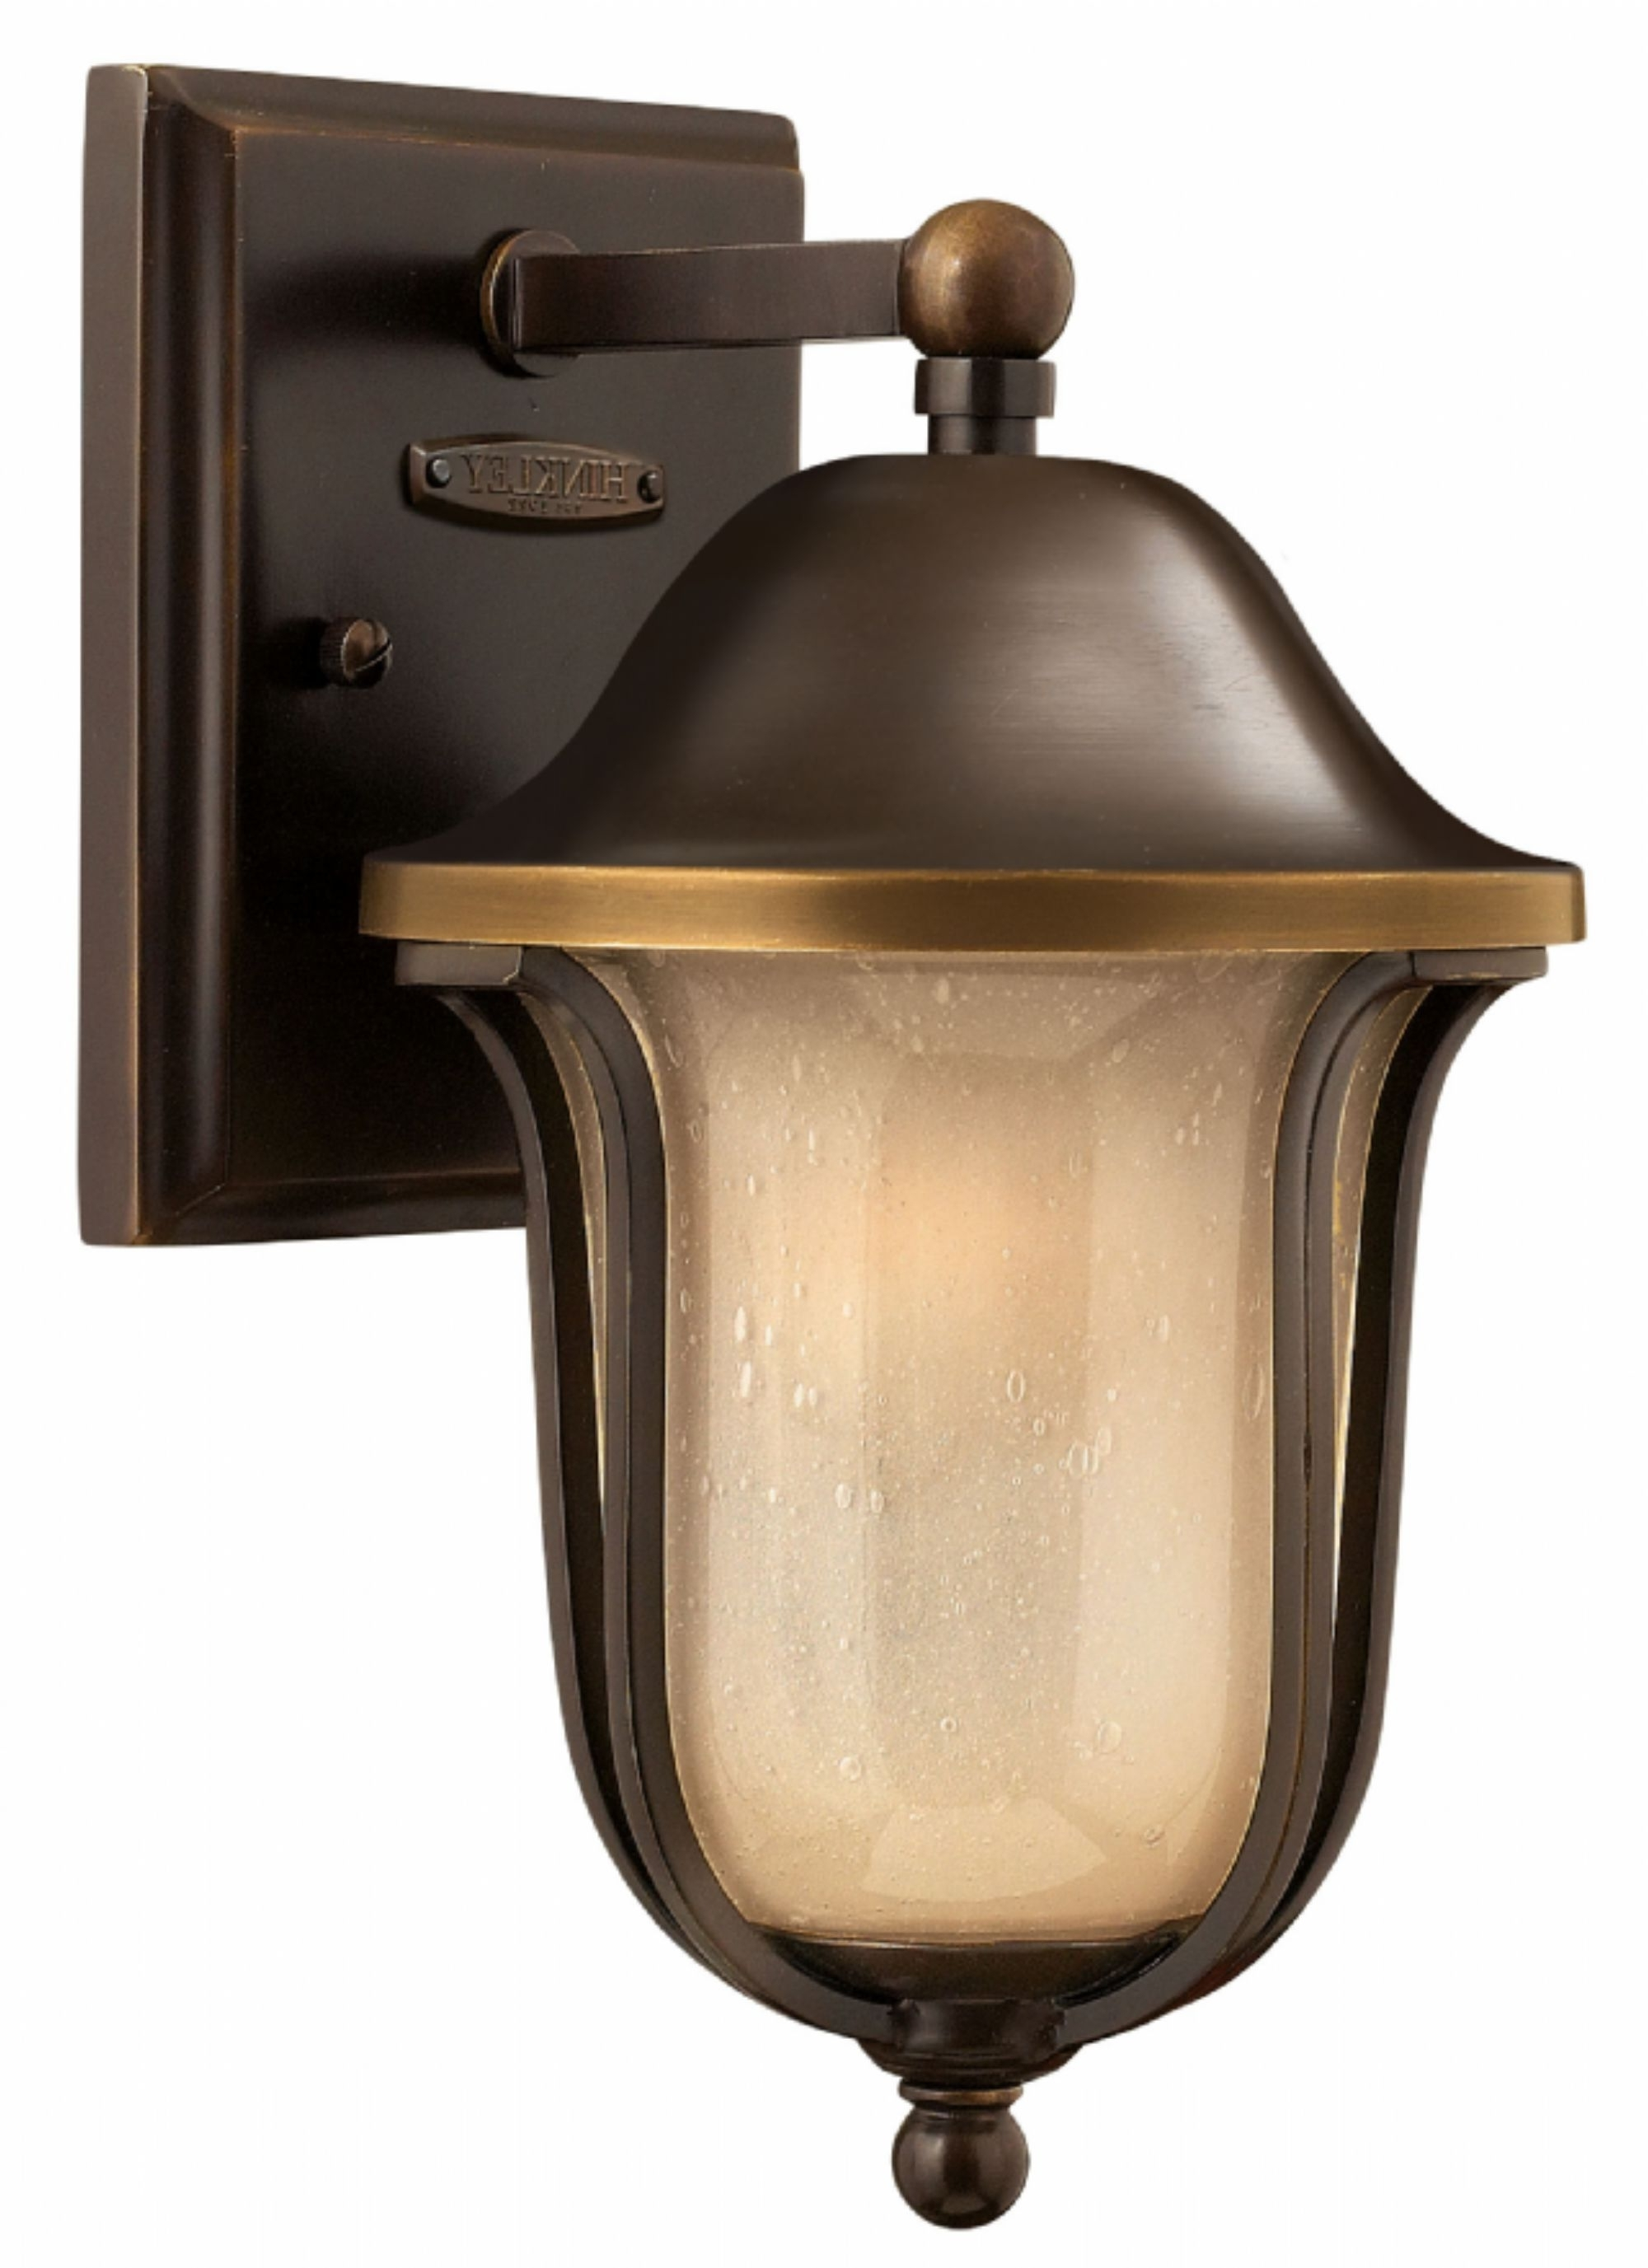 Fashionable Olde Bronze Bolla > Exterior Wall Mount Throughout Double Wall Mount Hinkley Lighting (View 9 of 20)